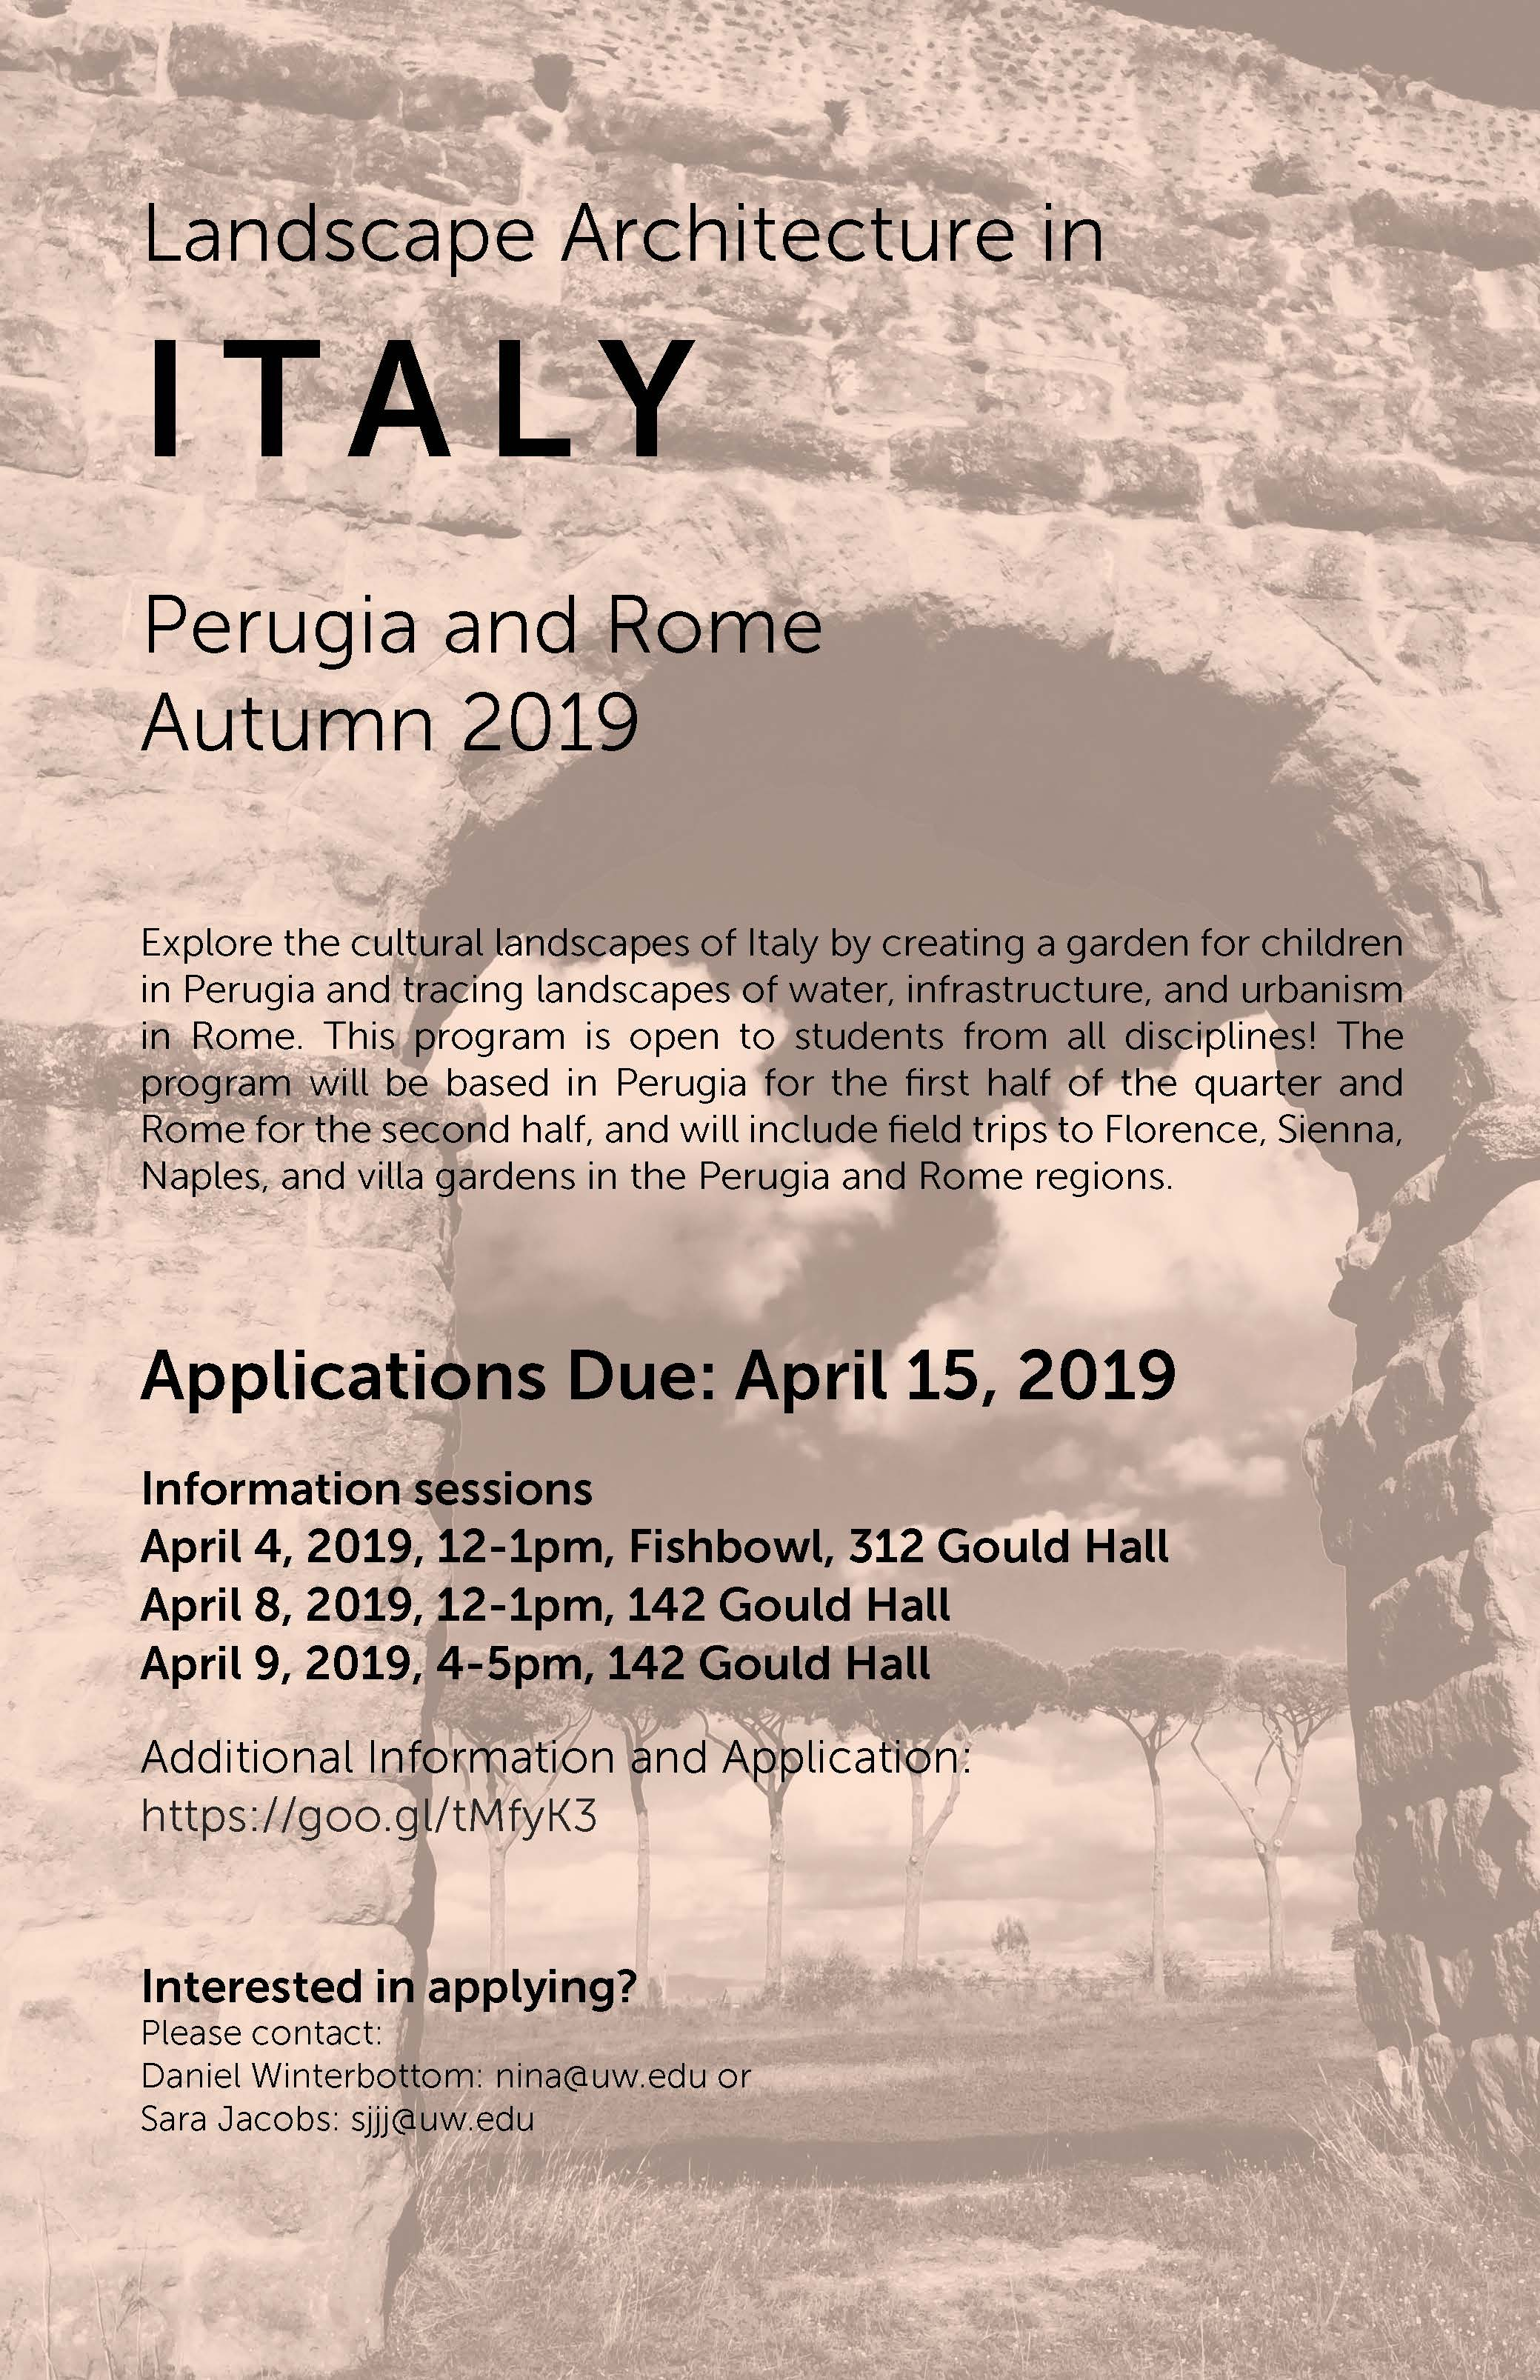 Landscape Architecture in Italy, Autumn 2019 - all Depts  welcome